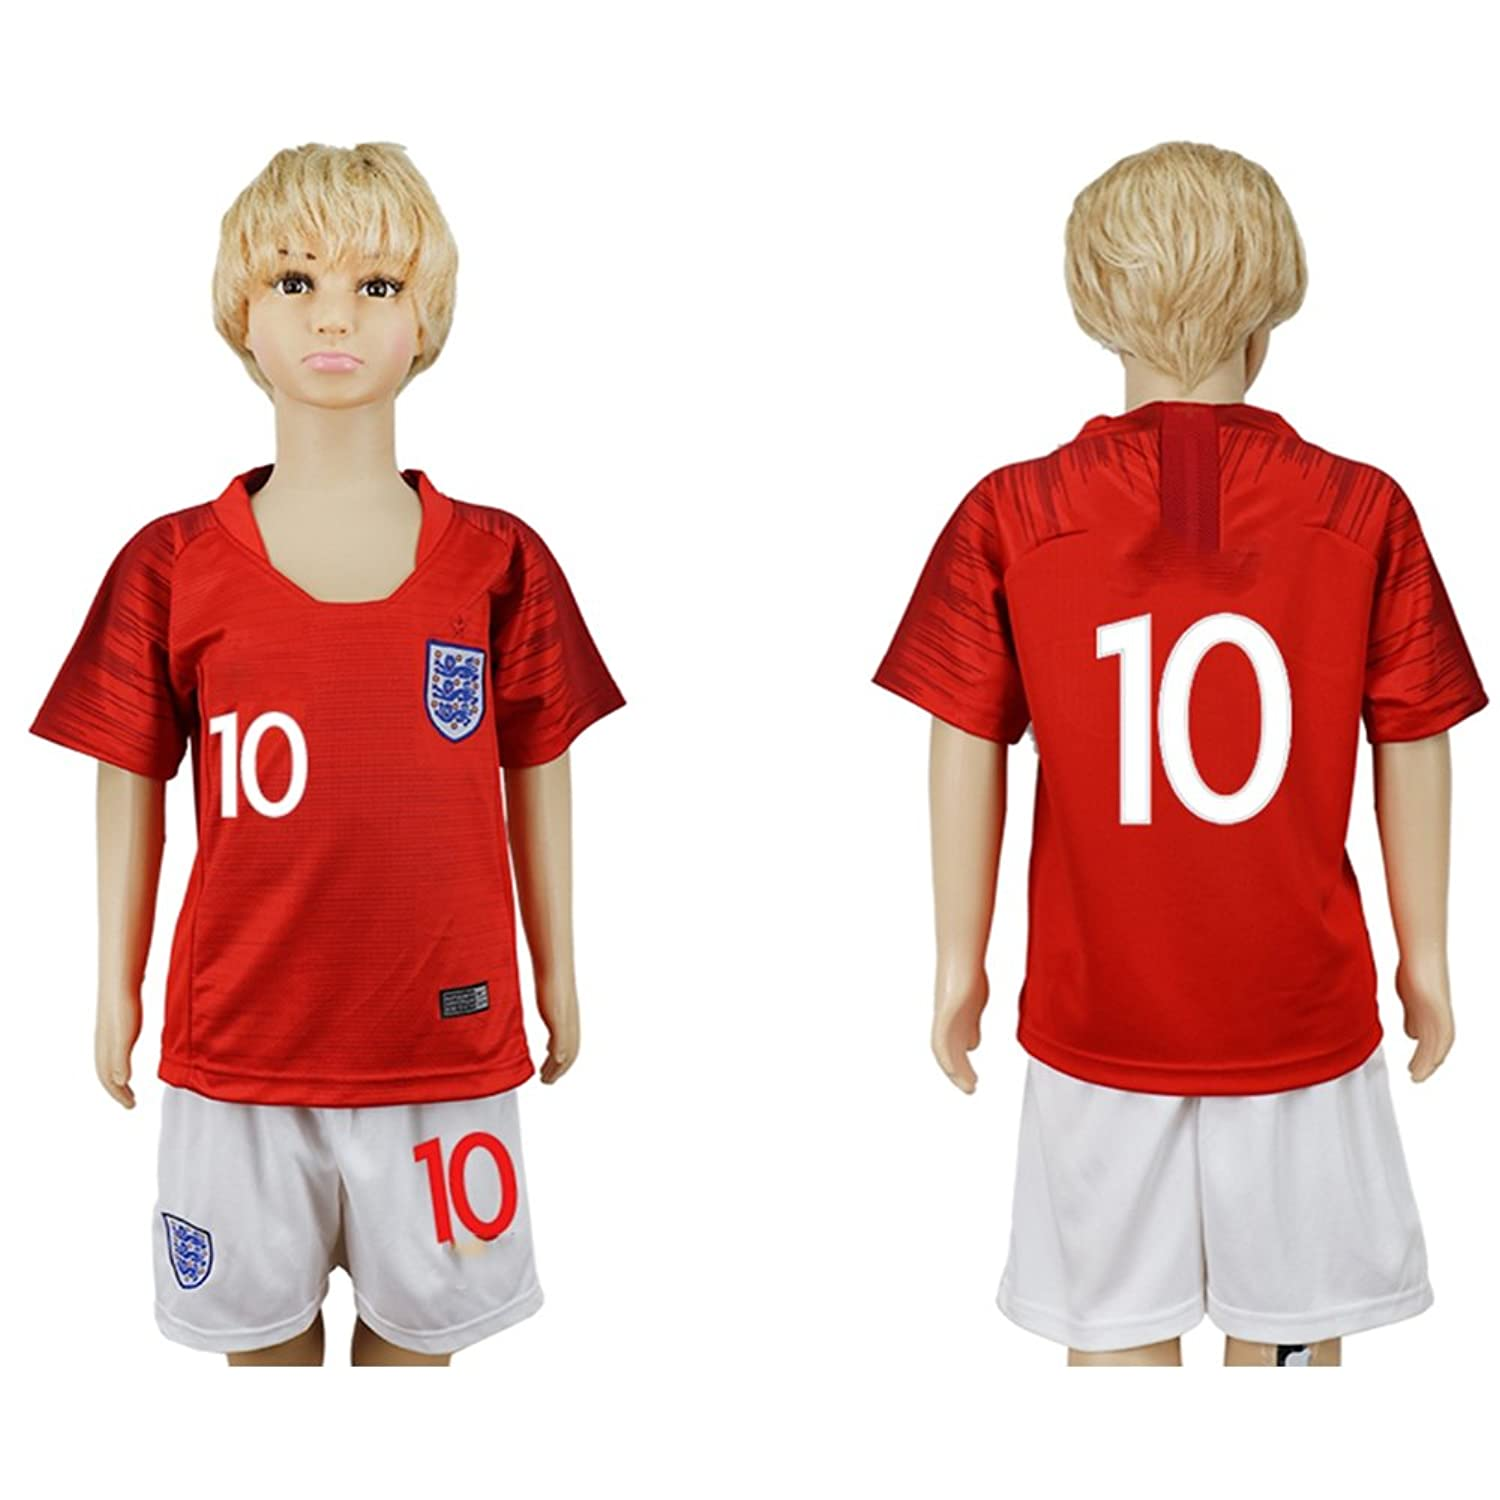 Puizozi SHIRT ボーイズ B07D3M22BR26# (10 to 11 Years Old)